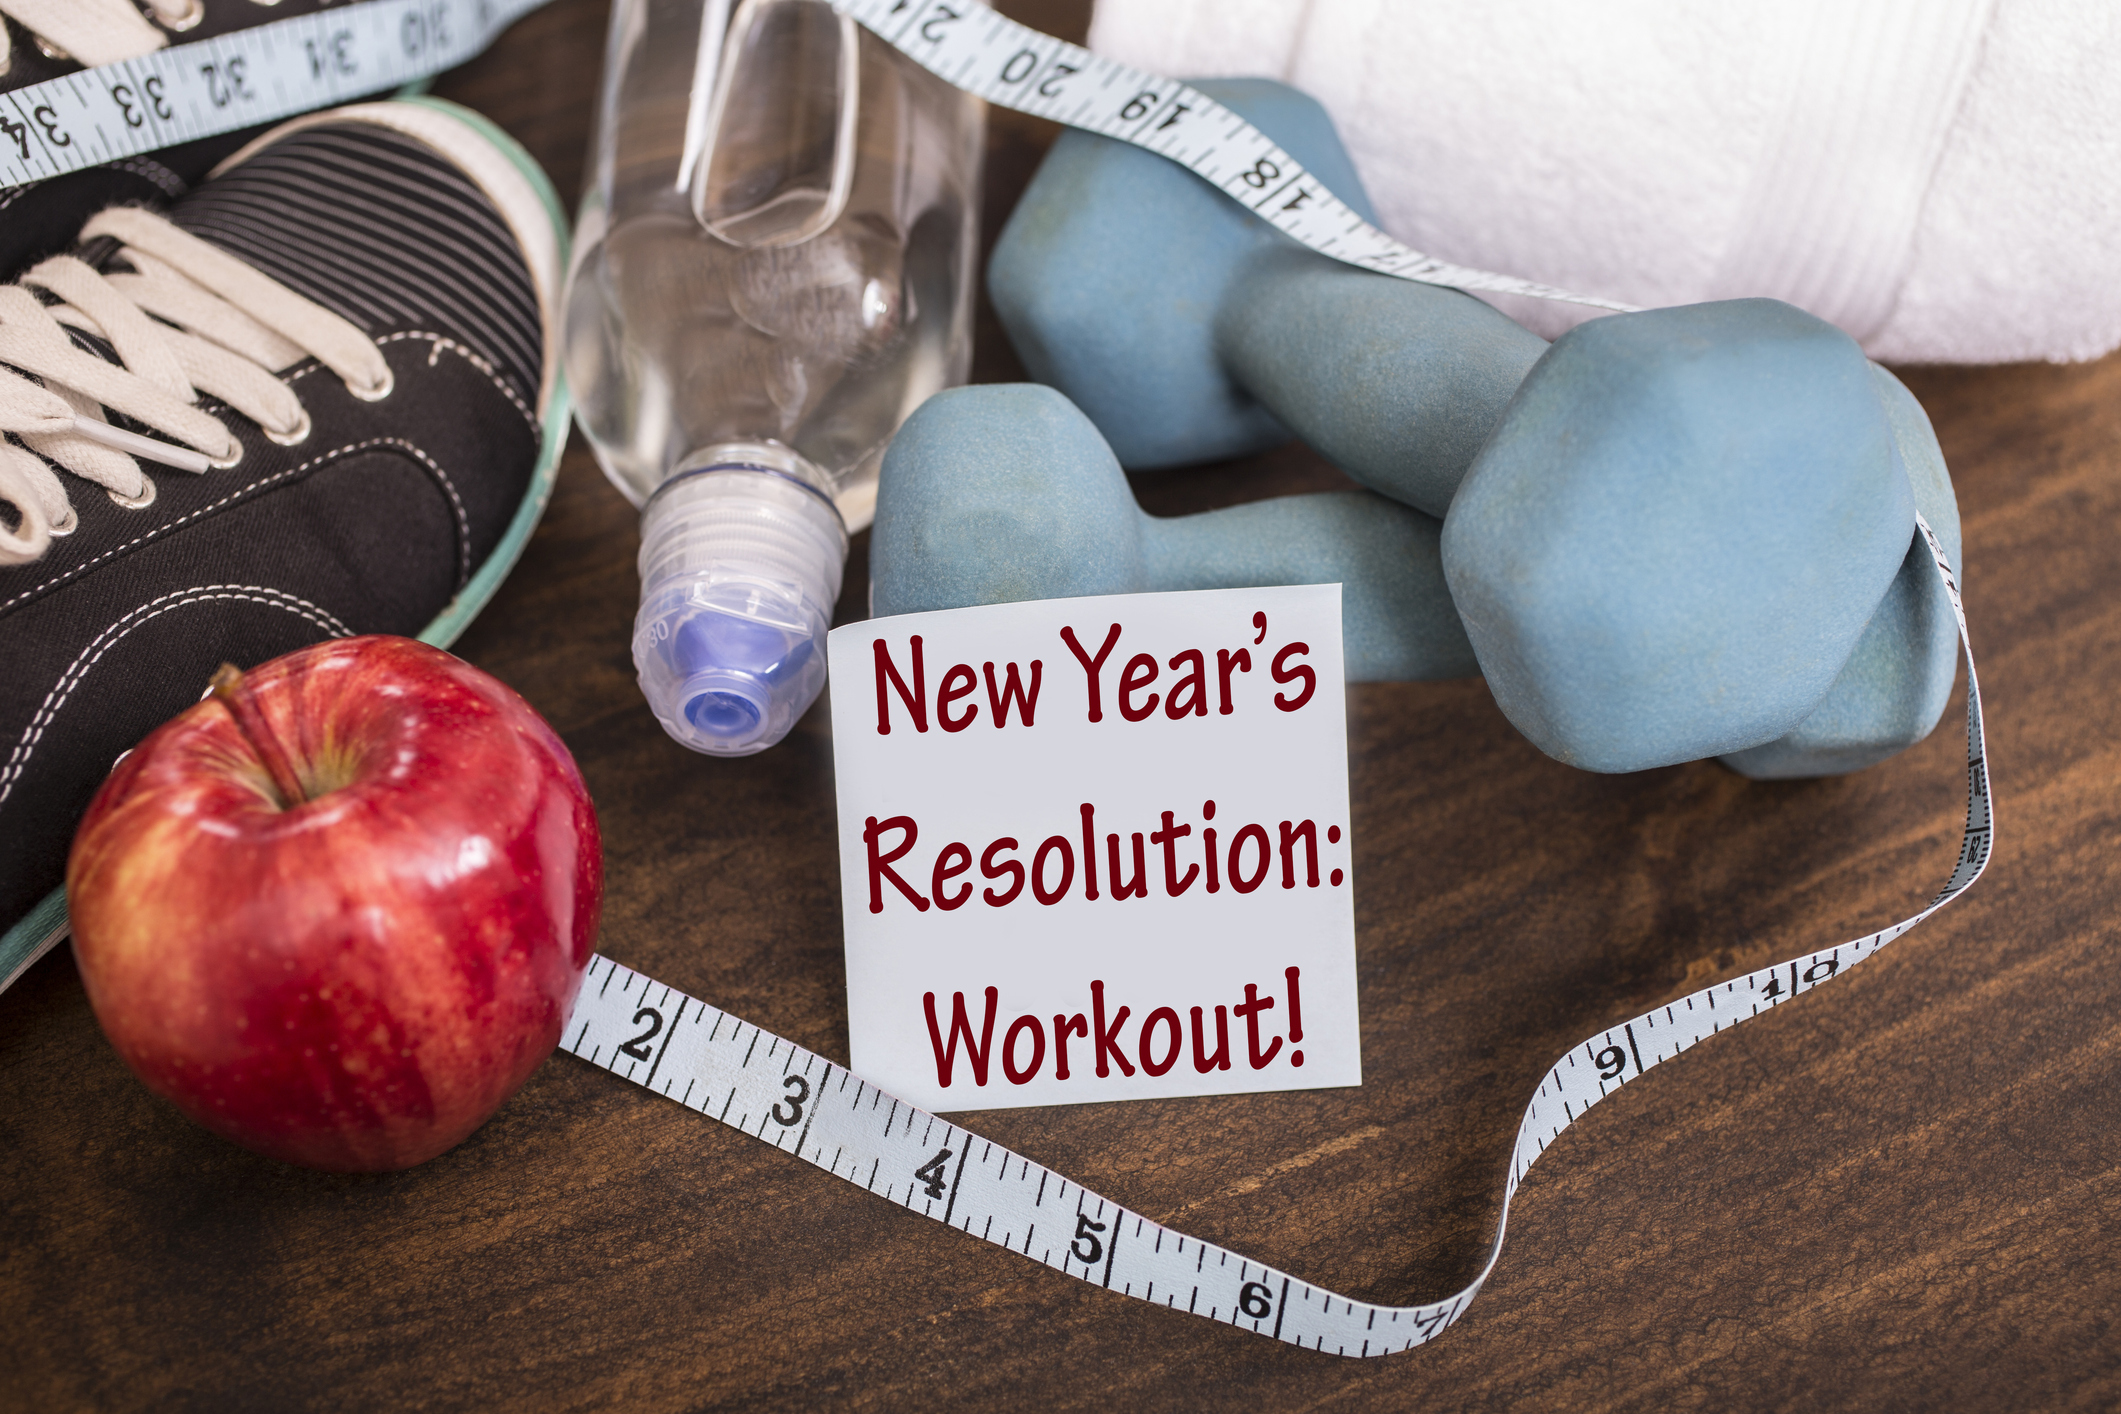 Top 5 Easiest Exercises For The New Year